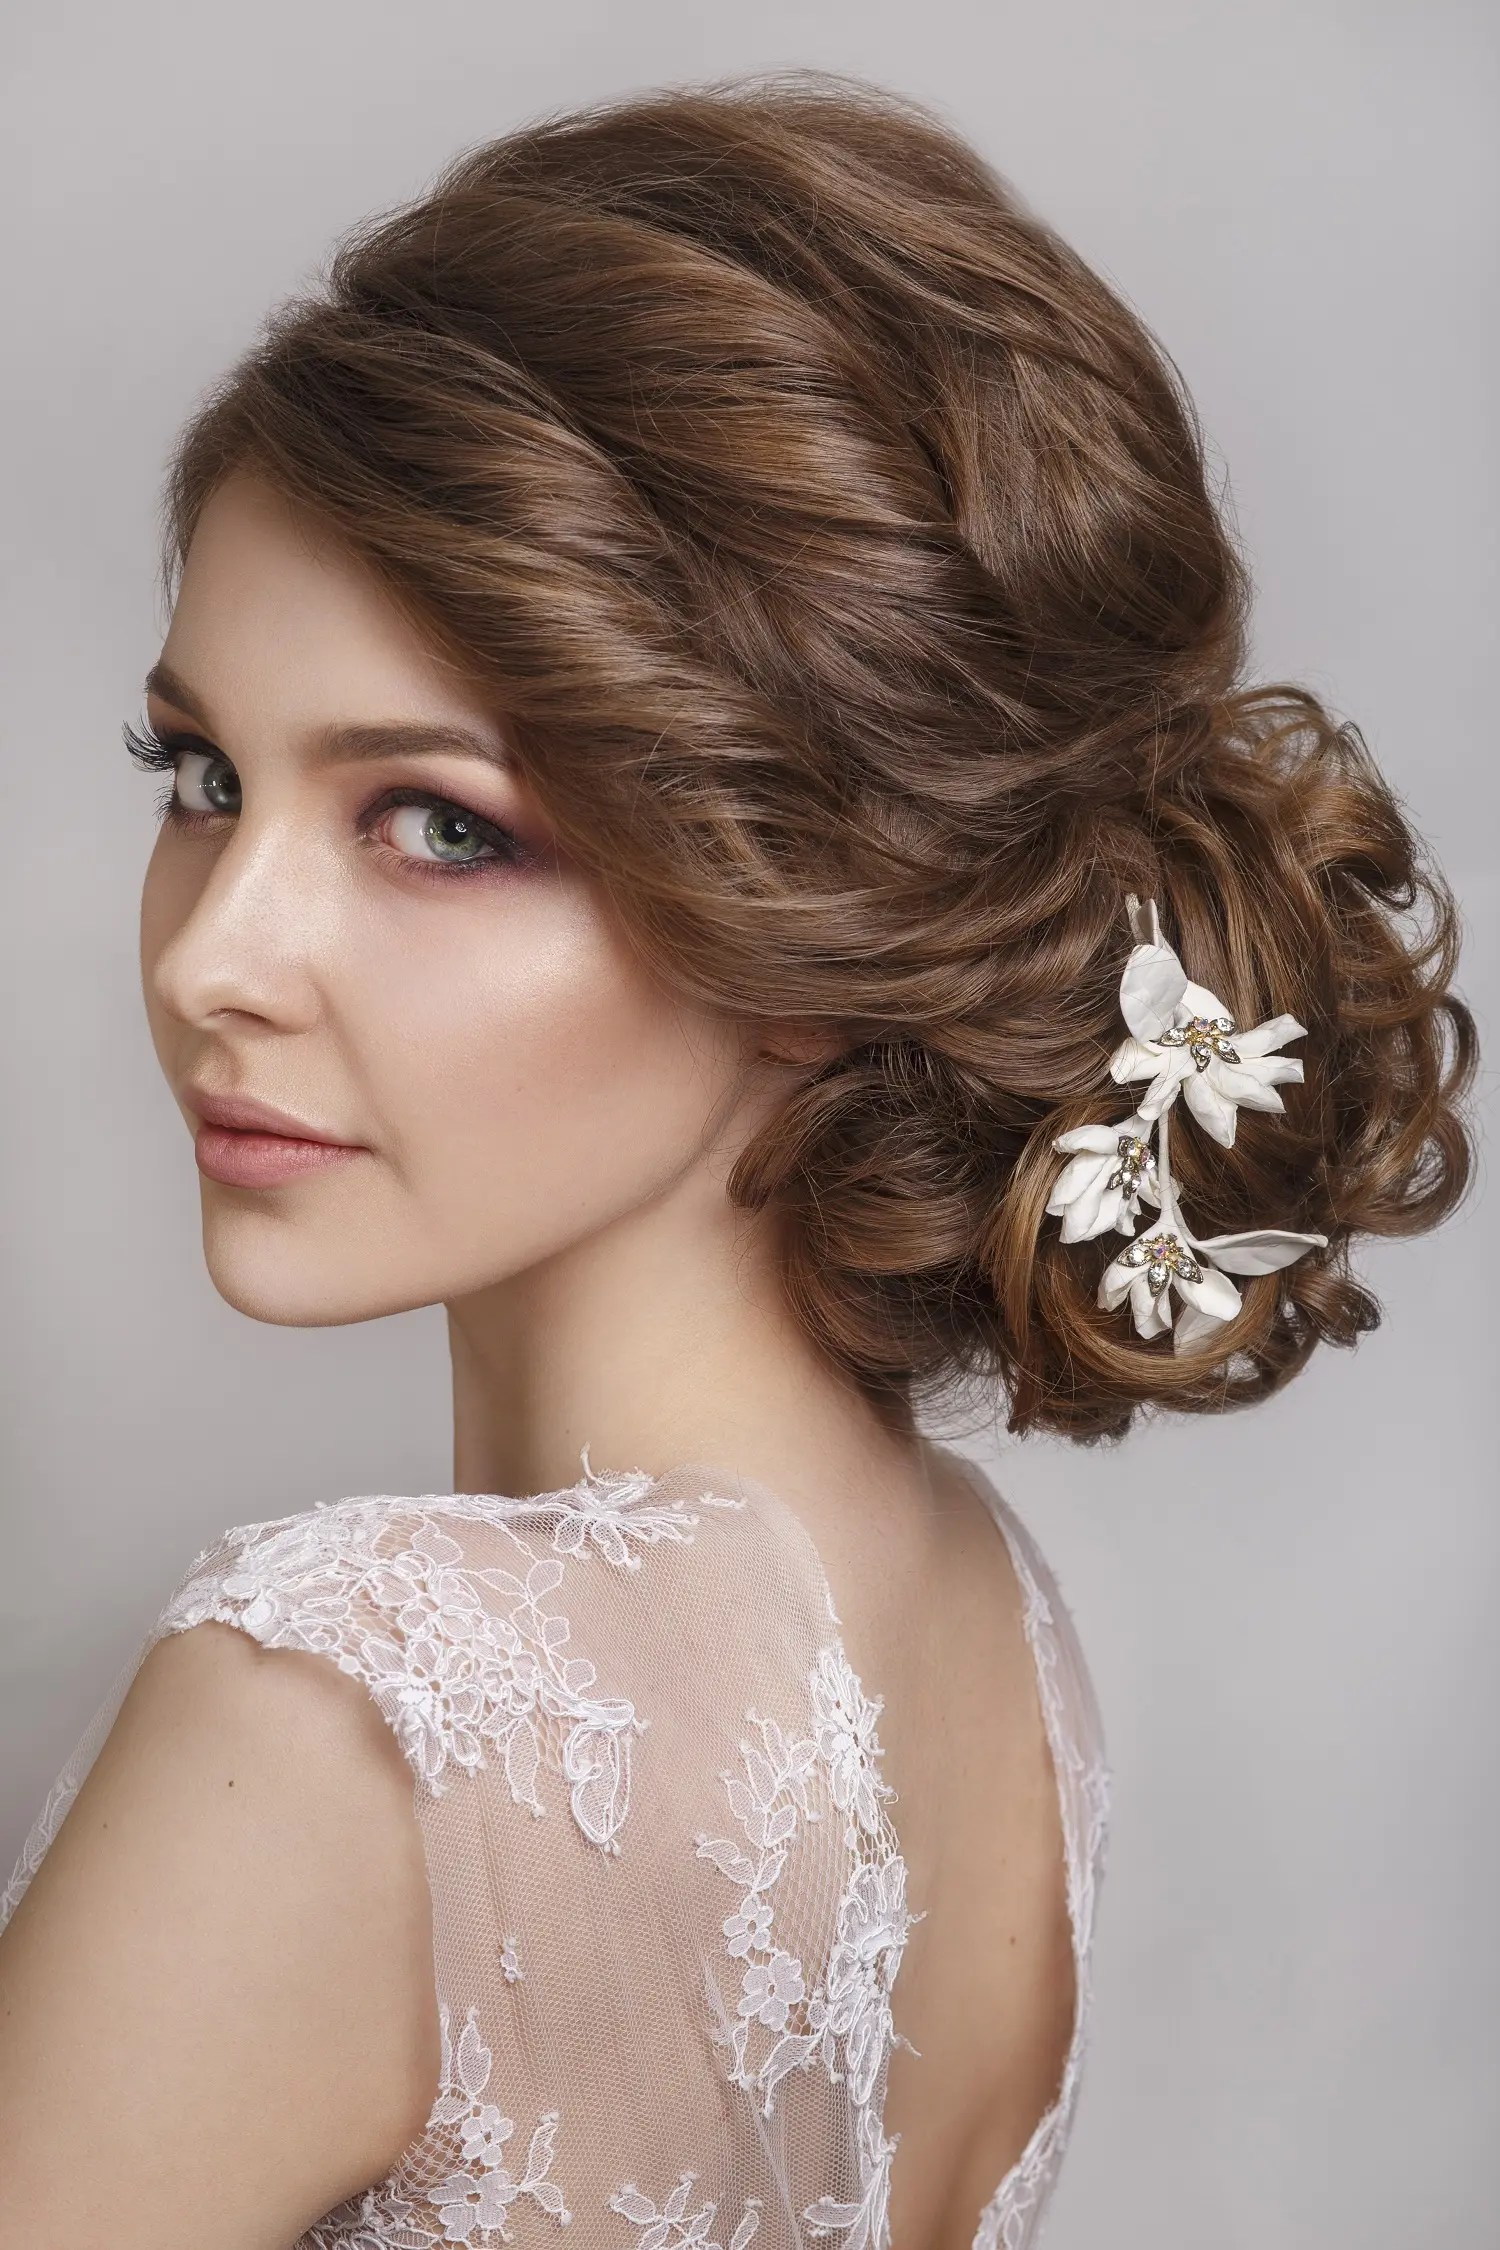 Choosing the perfect hairstyle to match your wedding dress